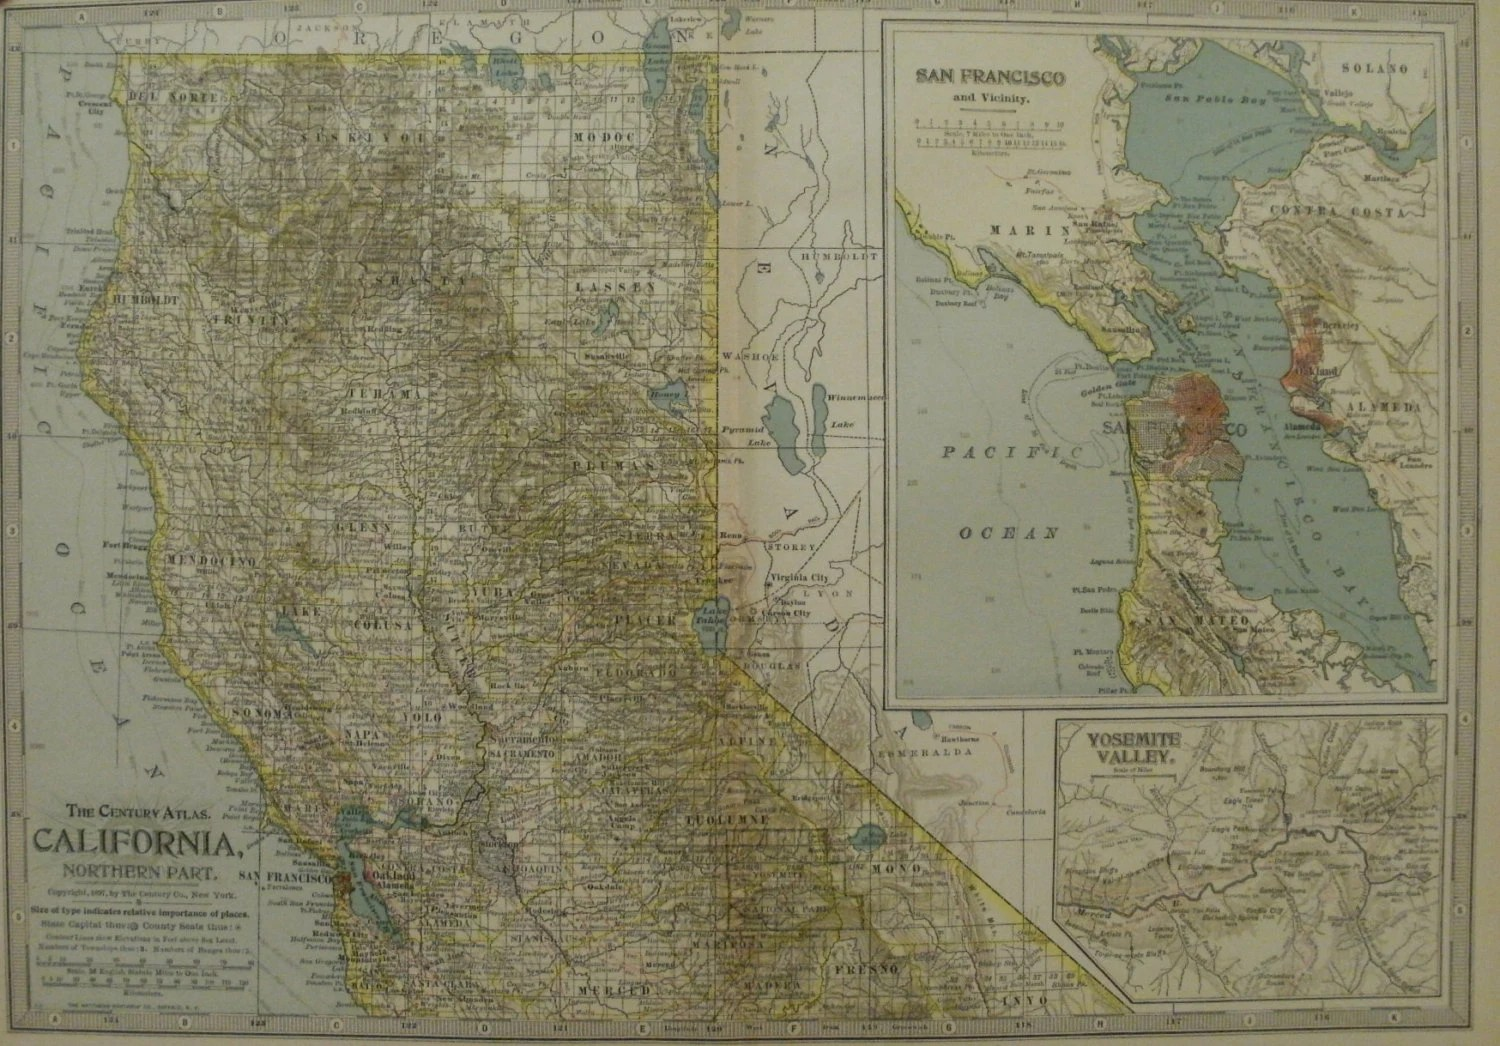 Vintage bay area map   Etsy California Map California State Map North Part California San Francisco Map Bay  Area Map United States Map Wall Map Art Wall 1902 10x15 VS14